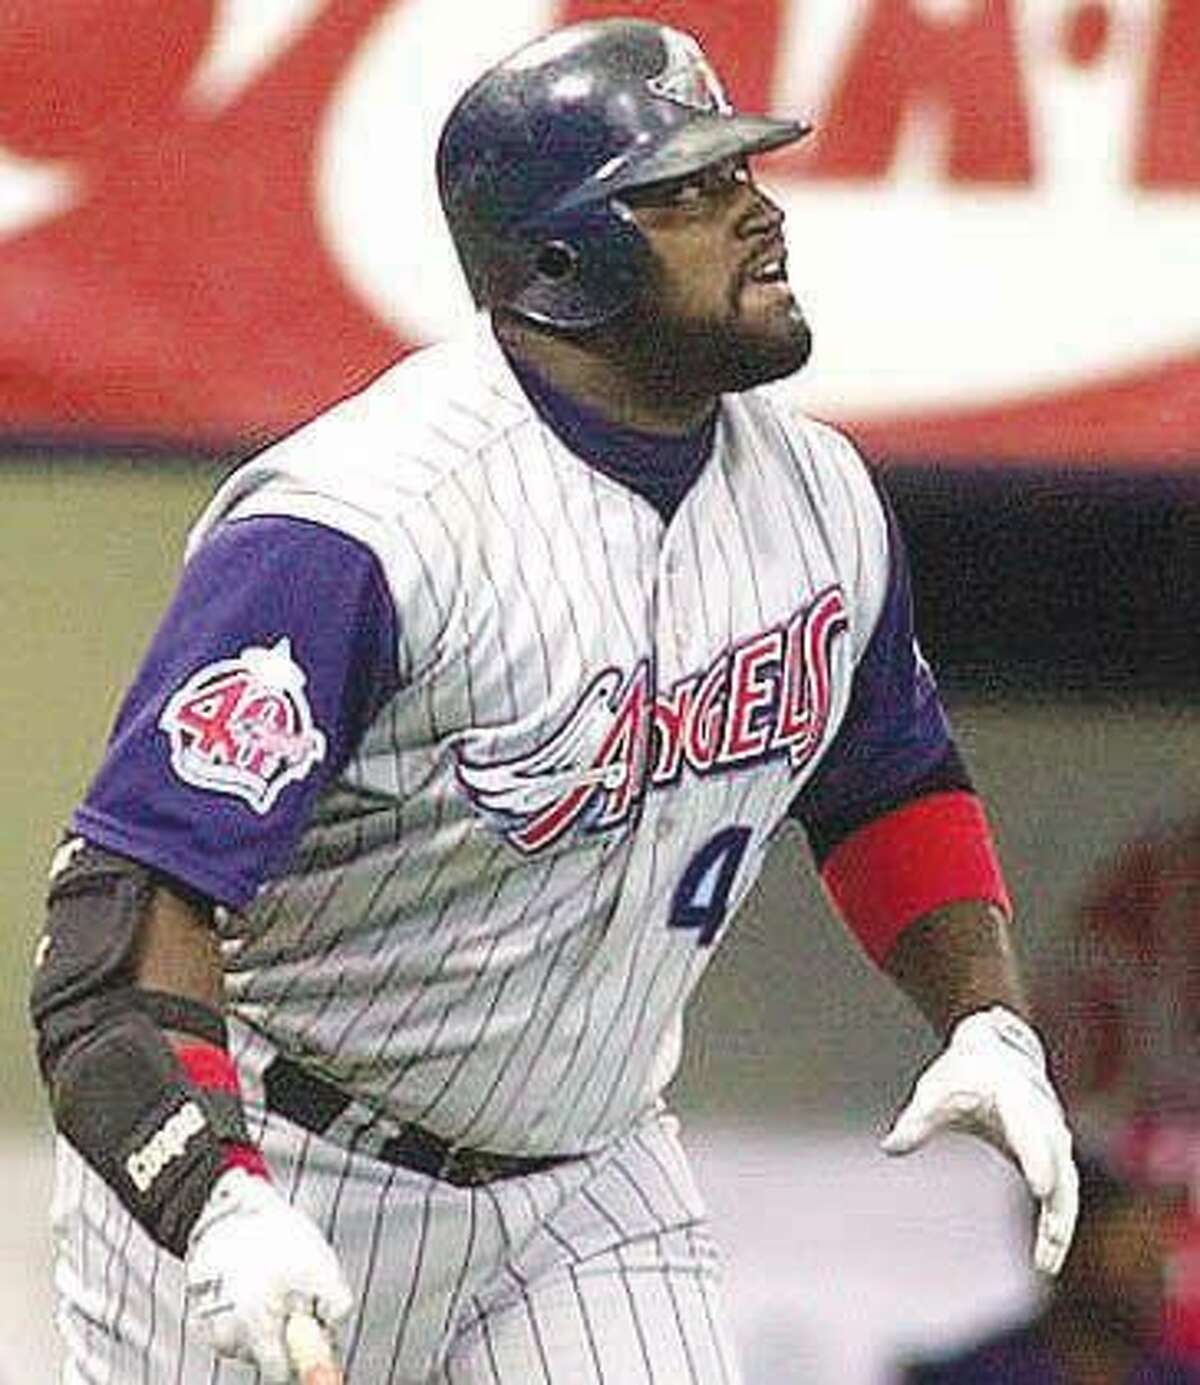 Norwalk native Mo Vaughn, who played with the Red Sox, Angels and Mets and was the American League MVP in 1995, helped lead the Cranbury League all-stars to back to back Kinlock championships in 1979 and '80. In the championship game in 1980, he went 5-for-5 with a home run, two doubles, four RBIs and three runs scored. (APfile photo)